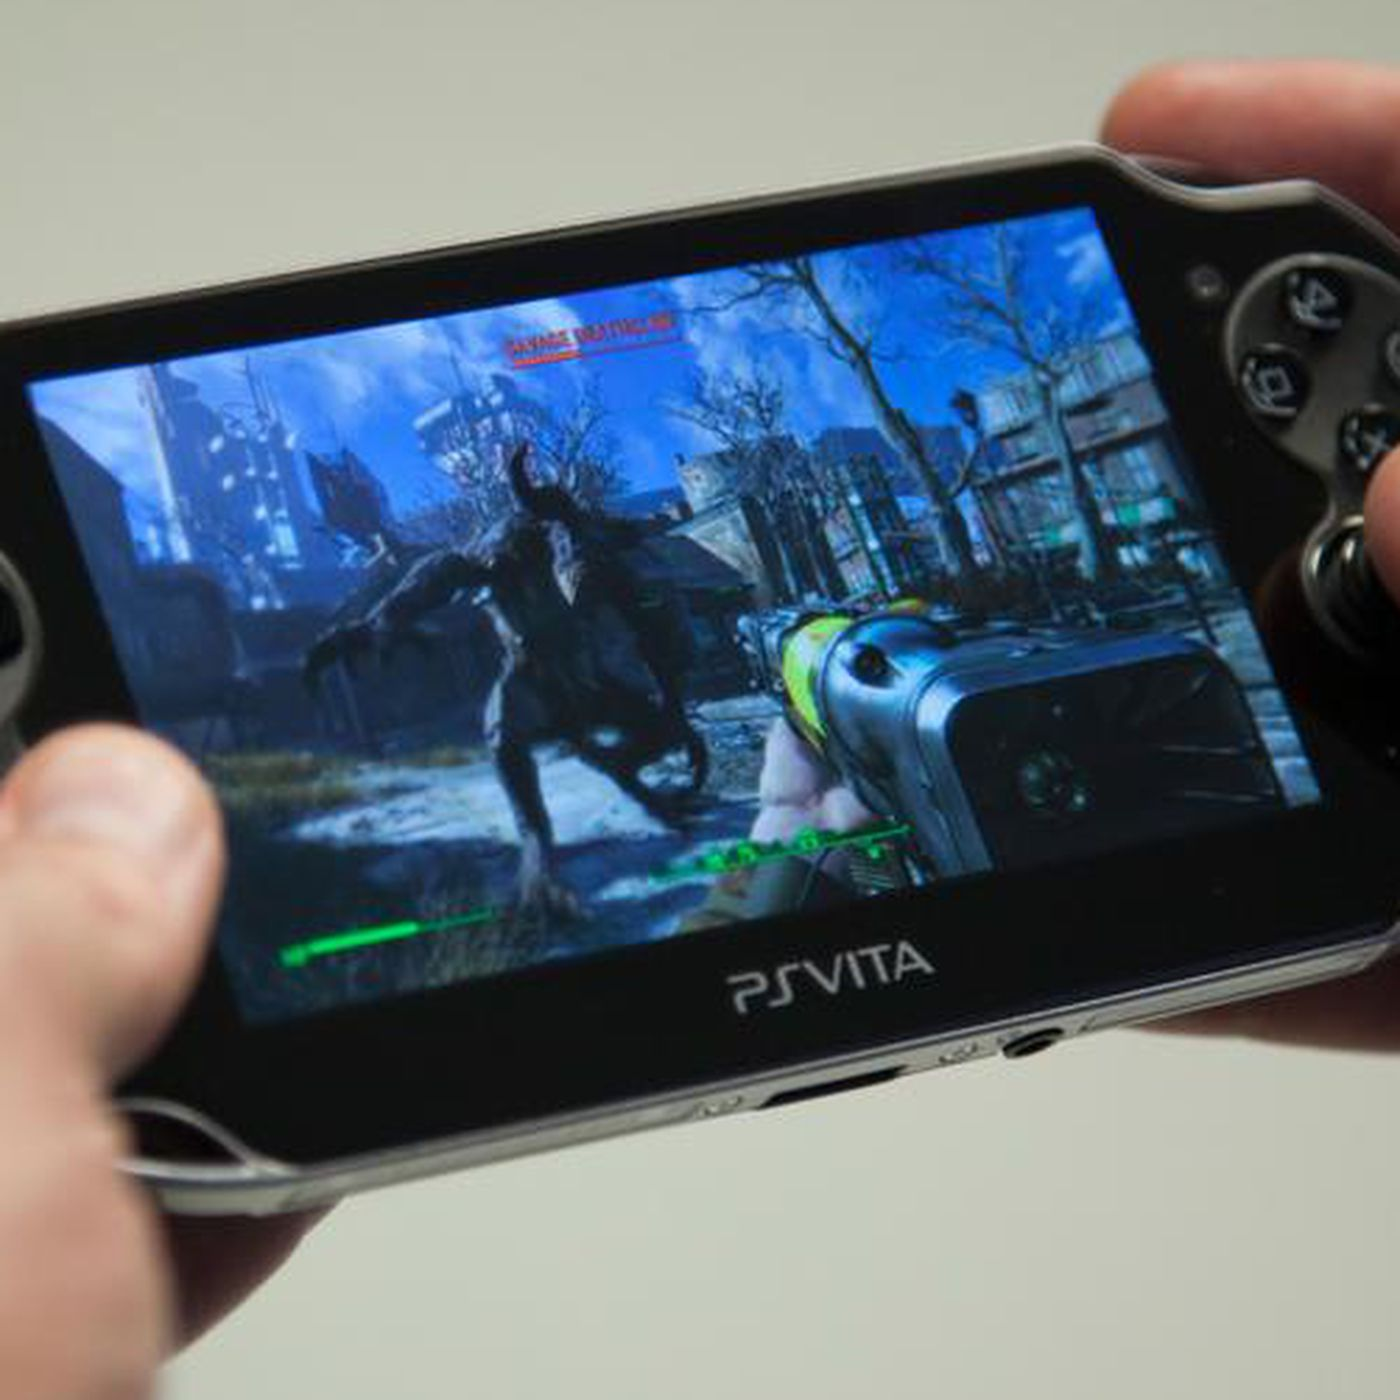 Fallout 4 is now the best reason to own a PlayStation Vita